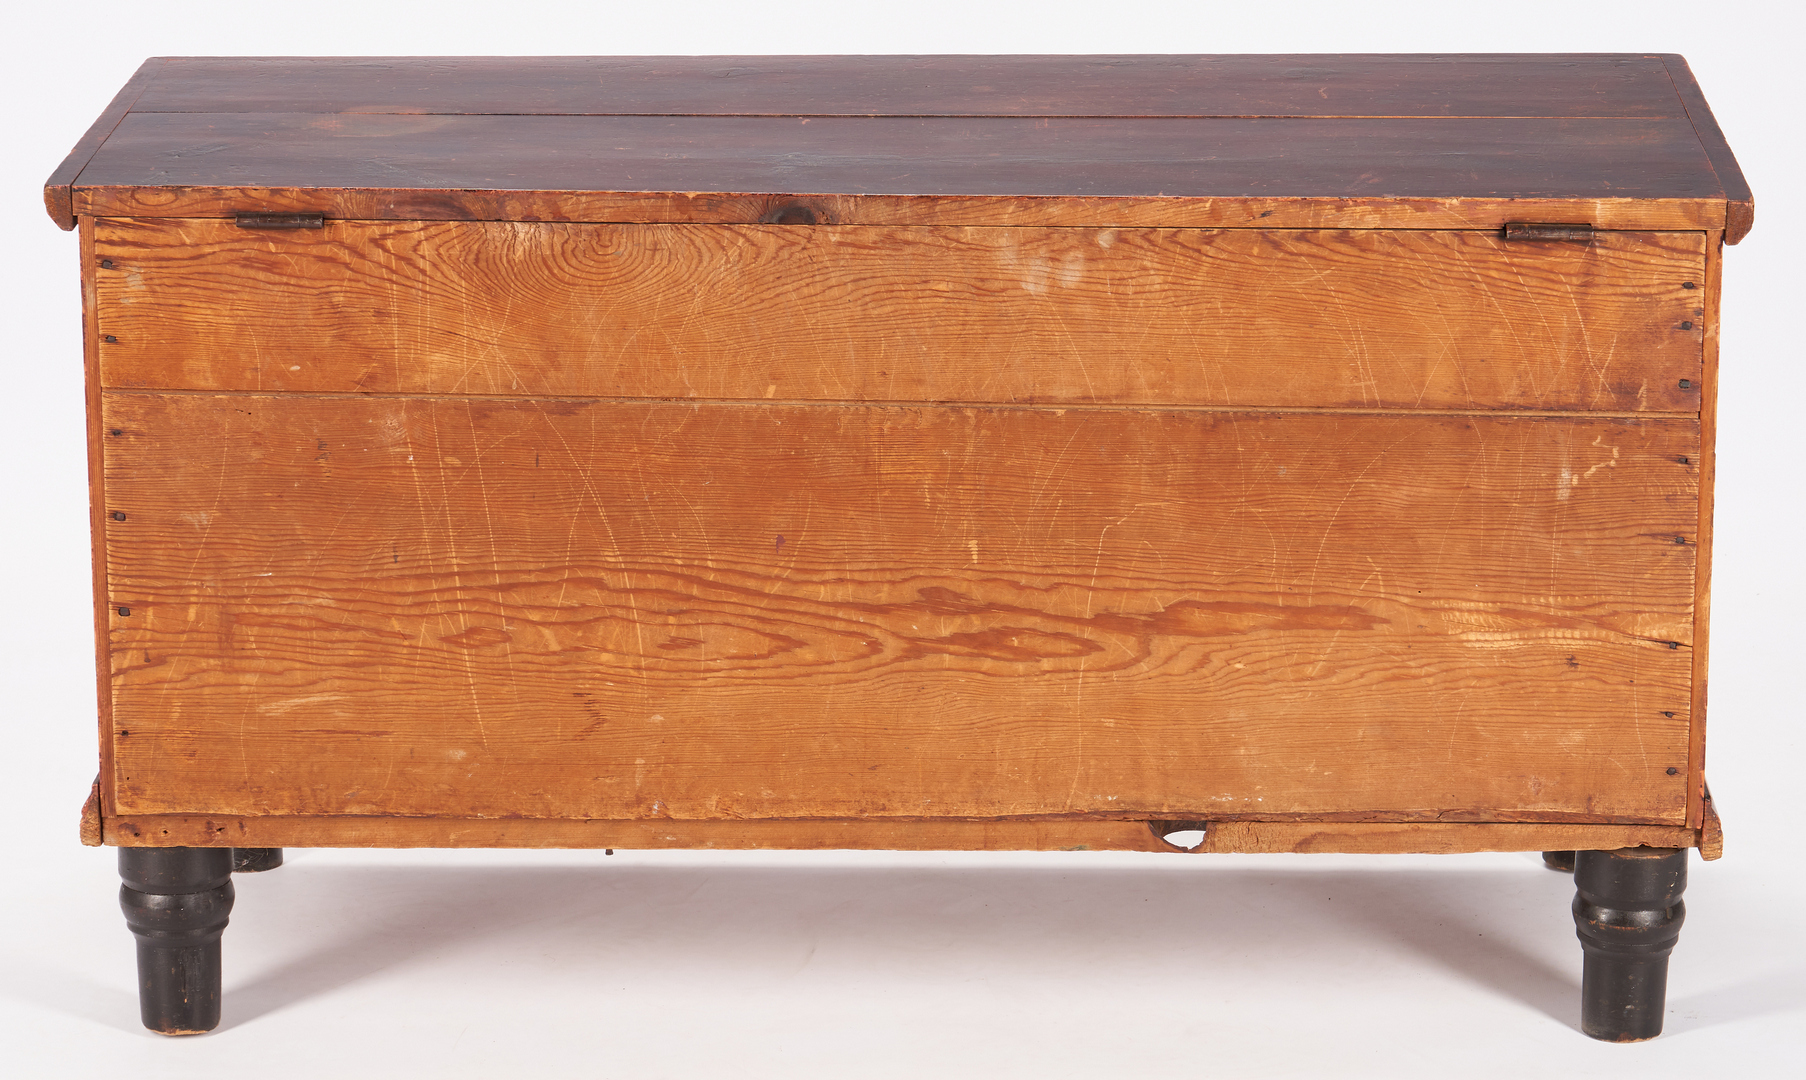 Lot 431: American Grain painted blanket chest, Poss. Southern